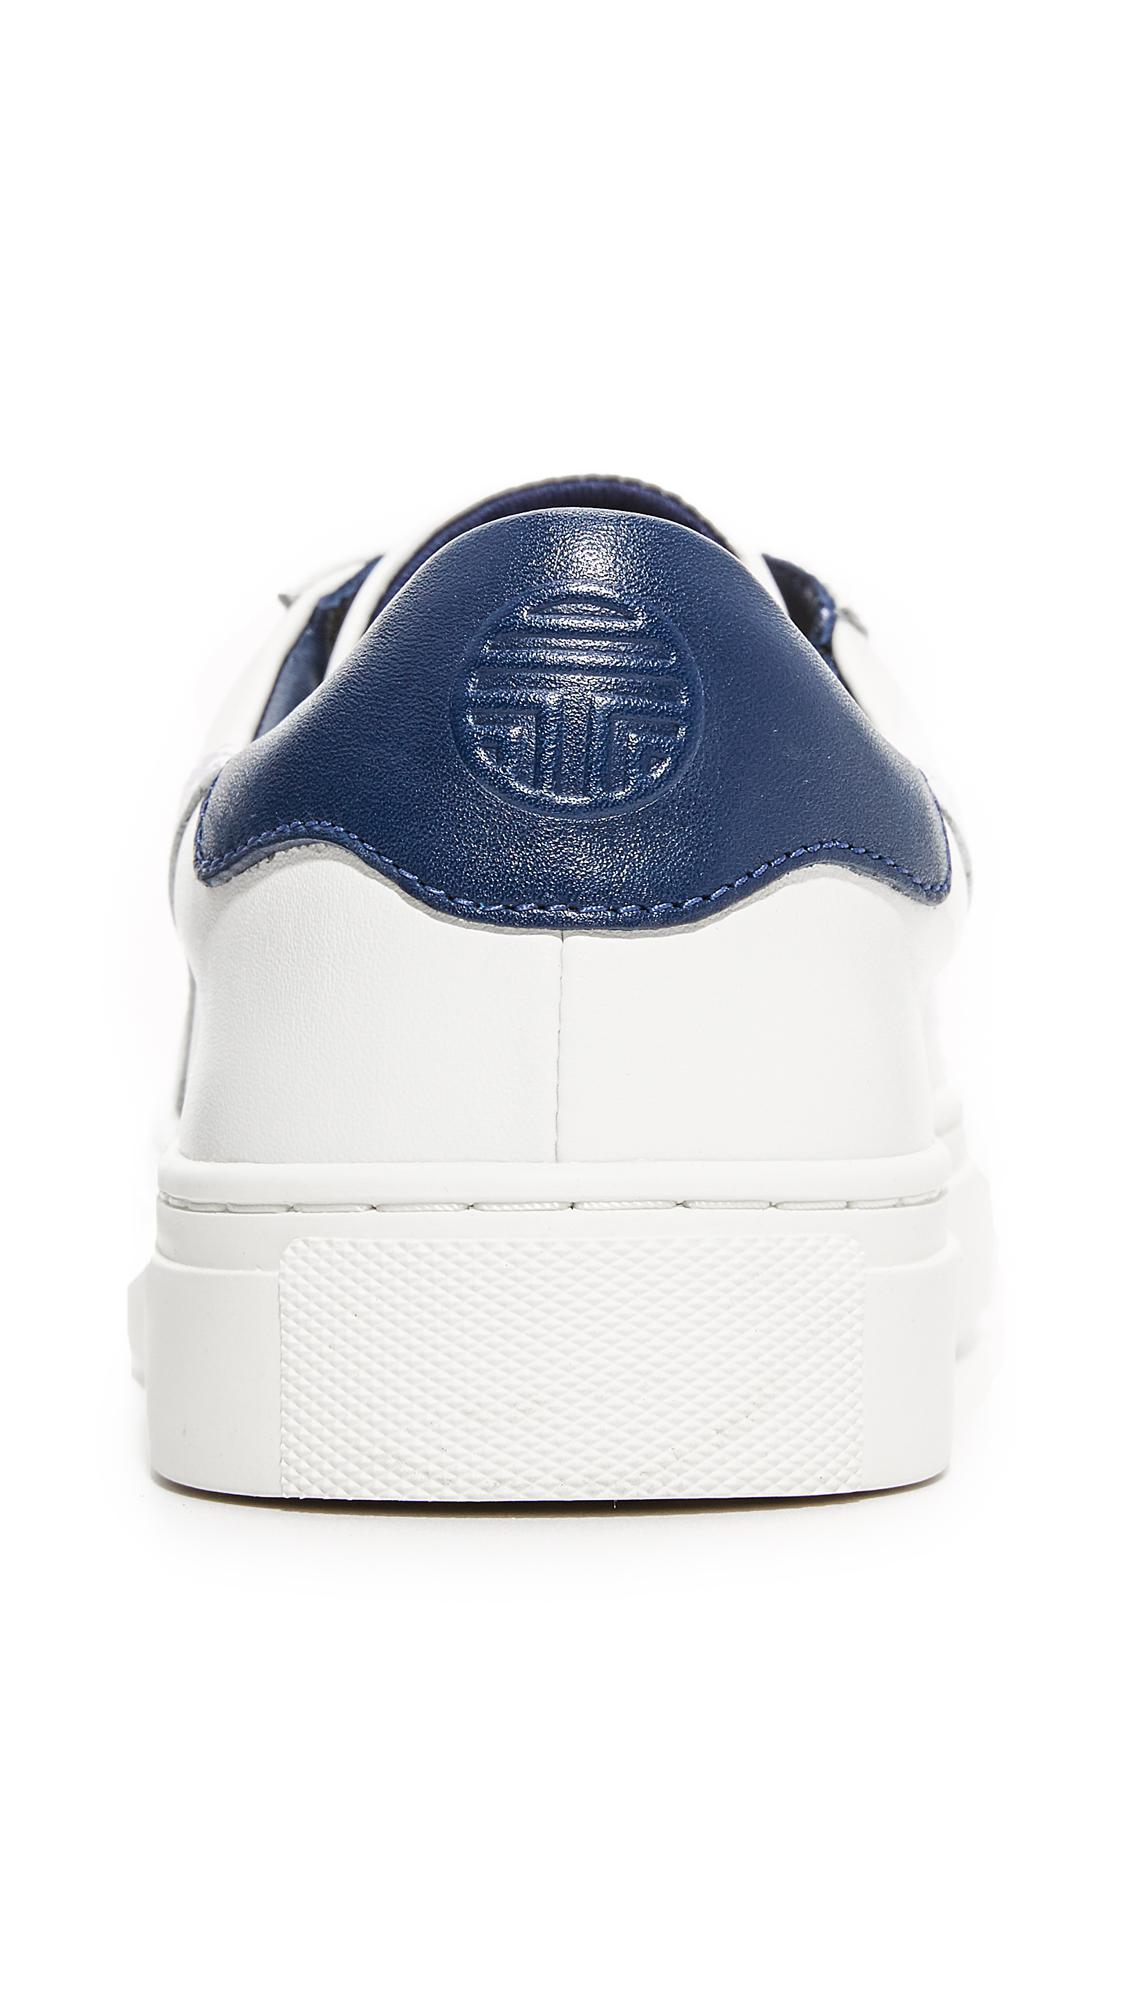 eb7ae844c760 Lyst - Tory Burch Tory Sport Chevron Colorblock Sneakers in Blue